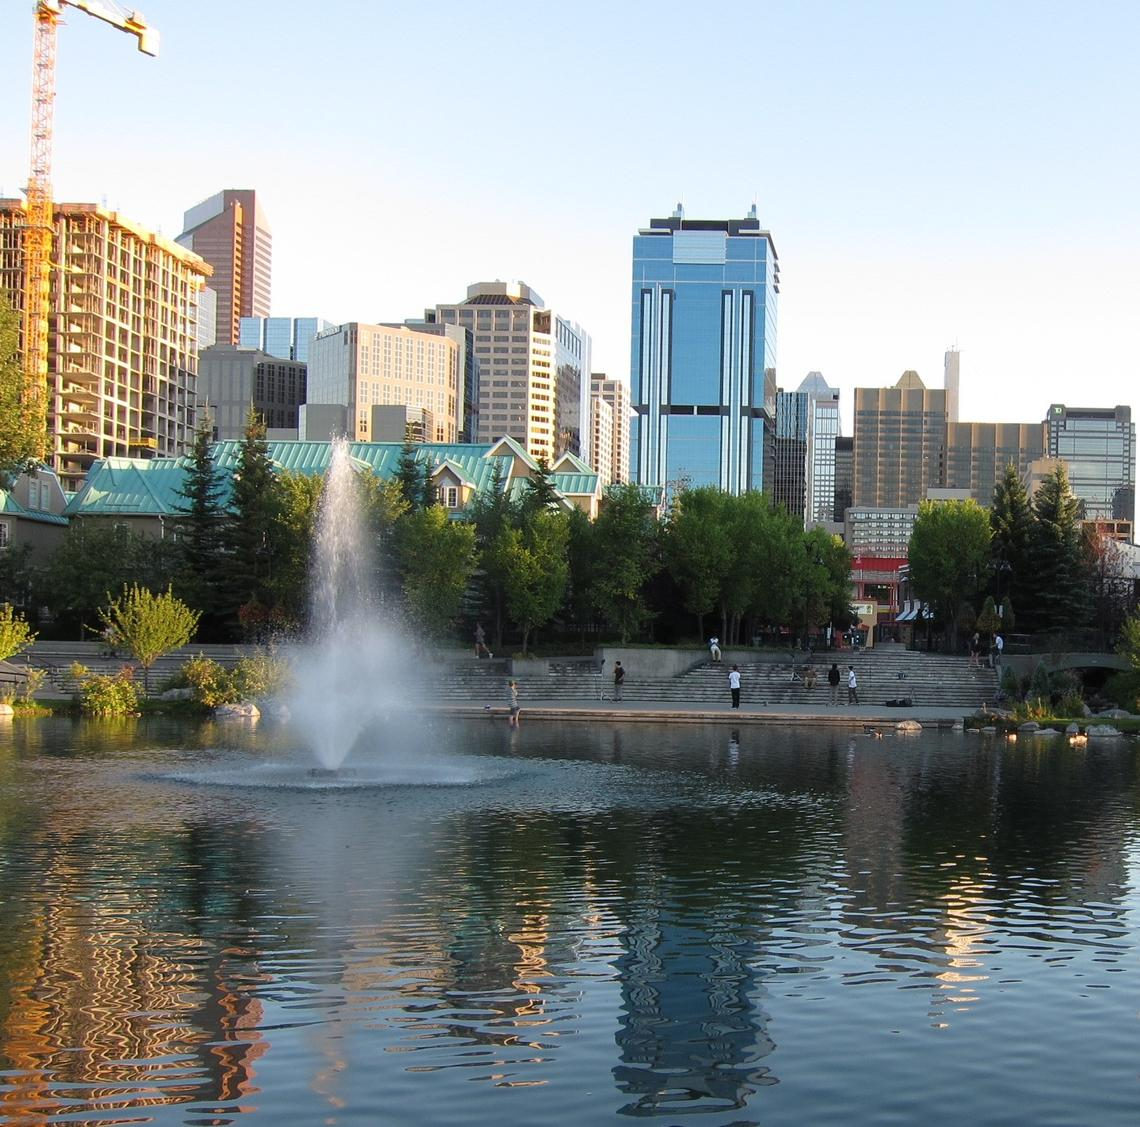 Water brings life to the city of Calgary